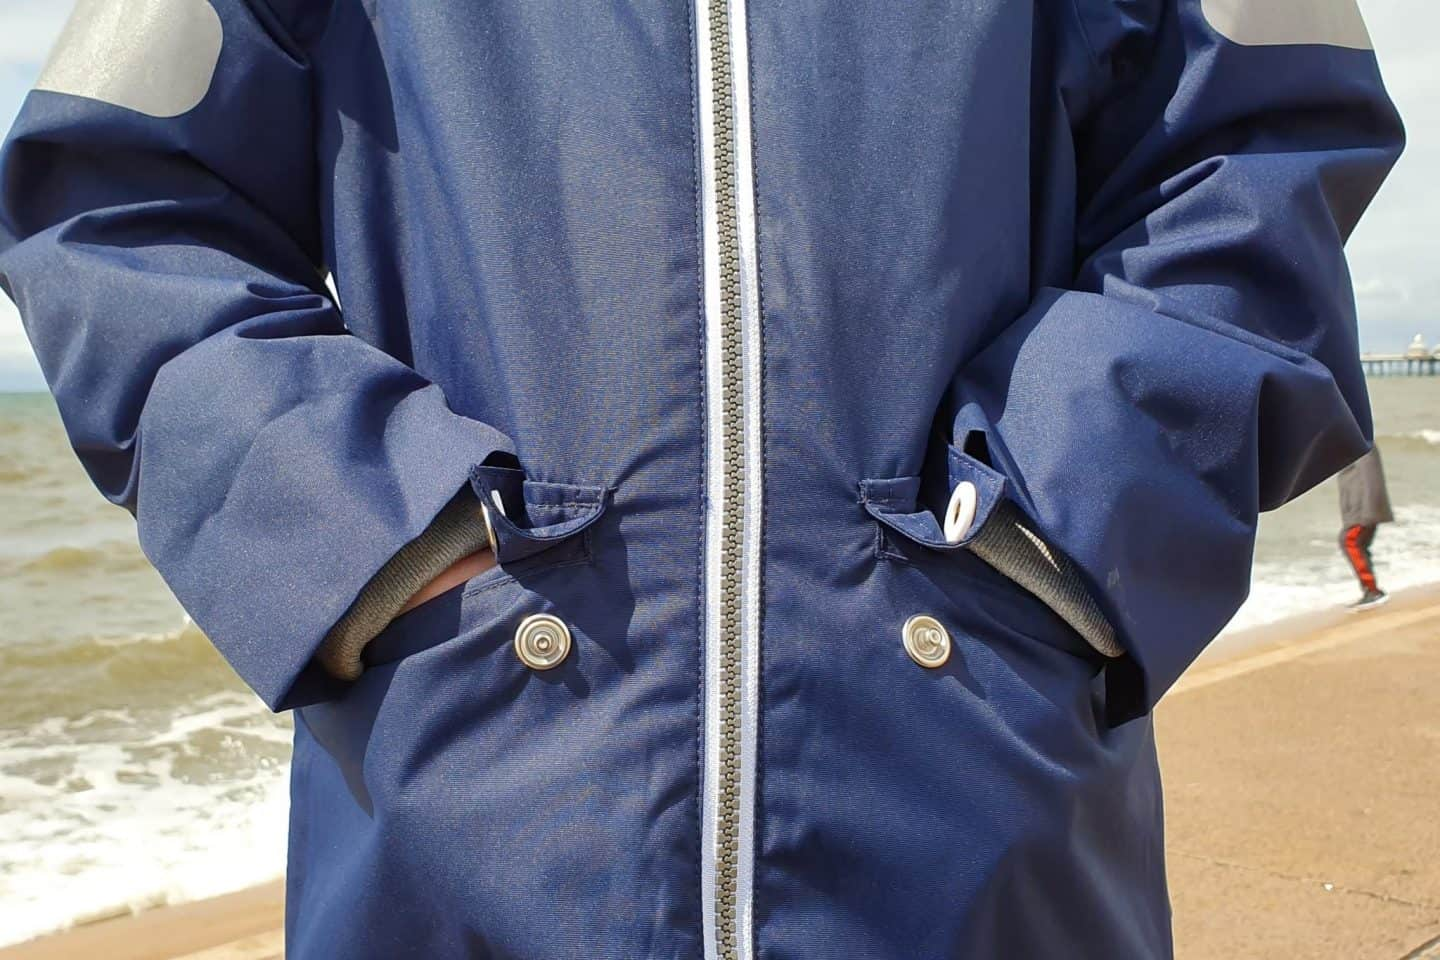 Hands in pockets showing White detailing on the Reimatec jacket.